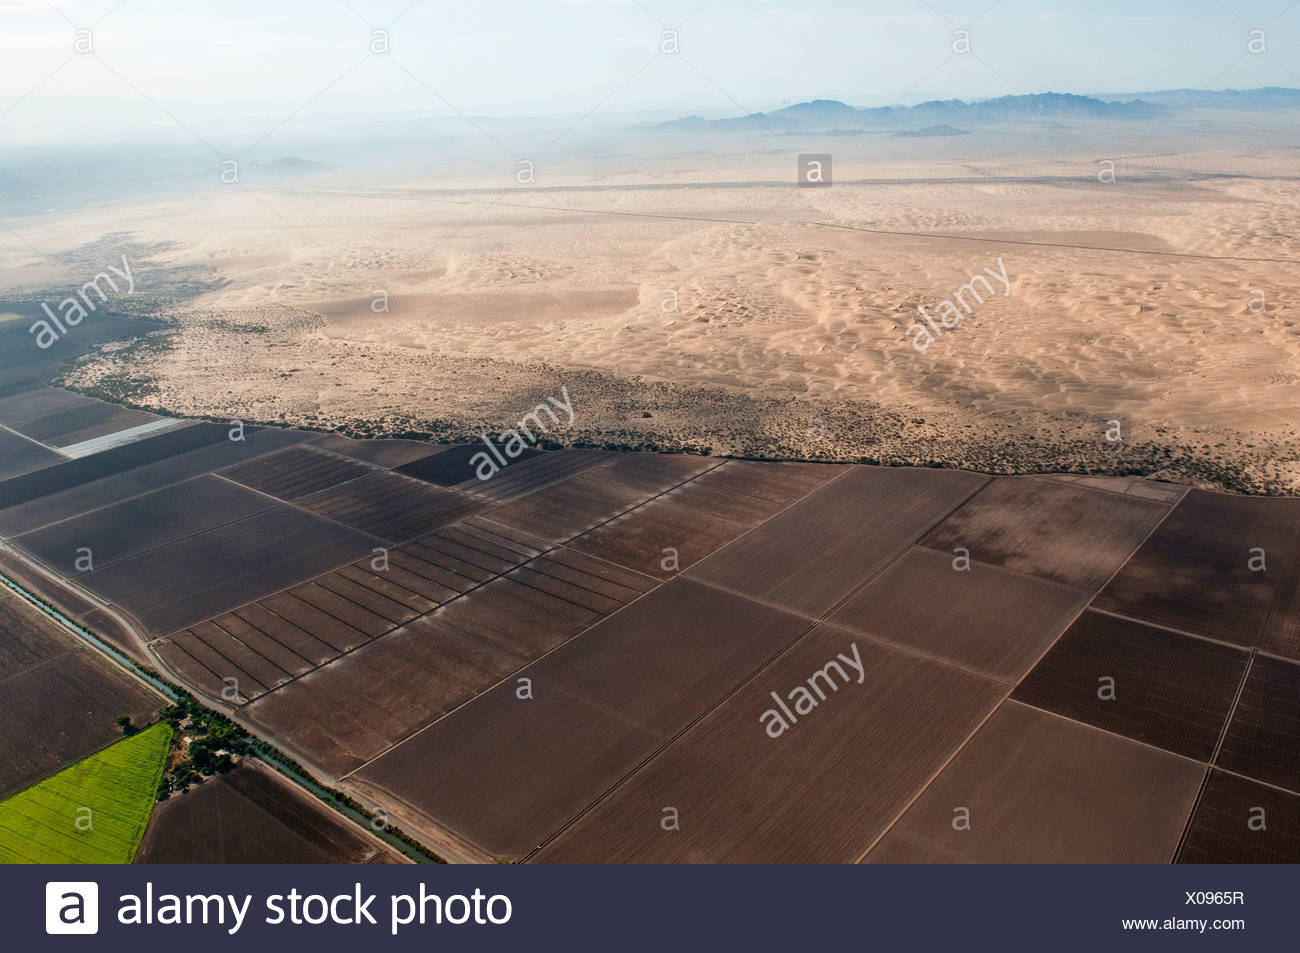 Agricultural fields meet sandy desert along the US/Mexico border. - Stock Image